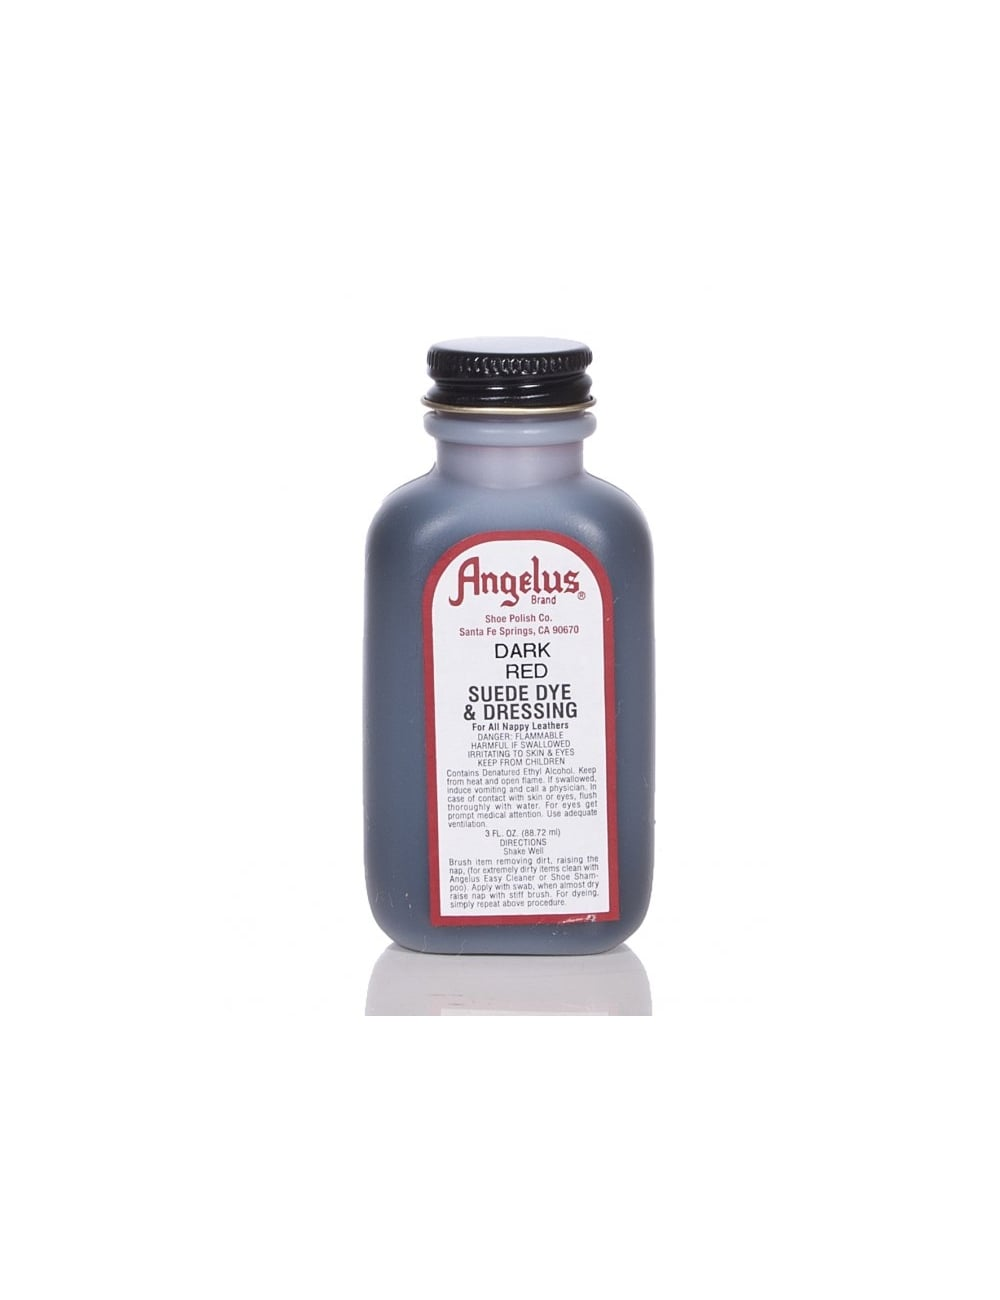 Angelus Dyes Paint Dark Red 3oz Suede Dye Spray Paint Supplies From Fat Buddha Store Uk